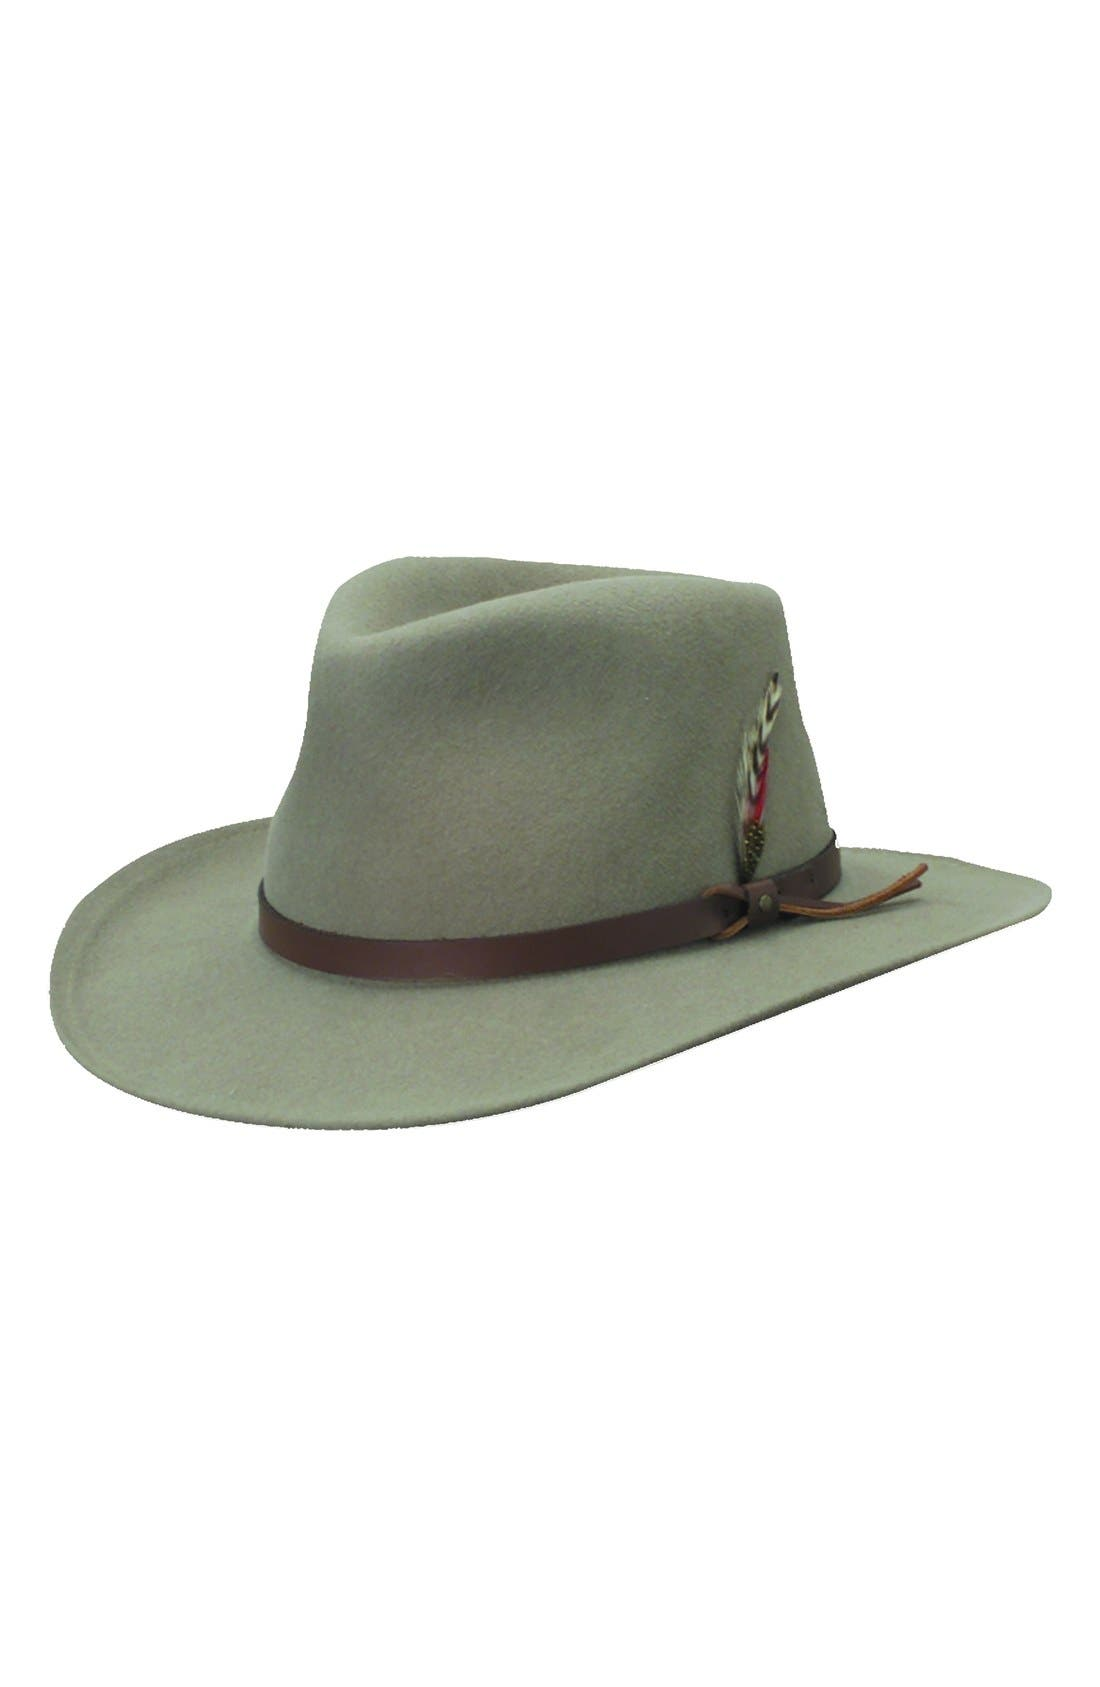 'Classico' Crushable Felt Outback Hat,                         Main,                         color, PUTTY GREY/ BROWN